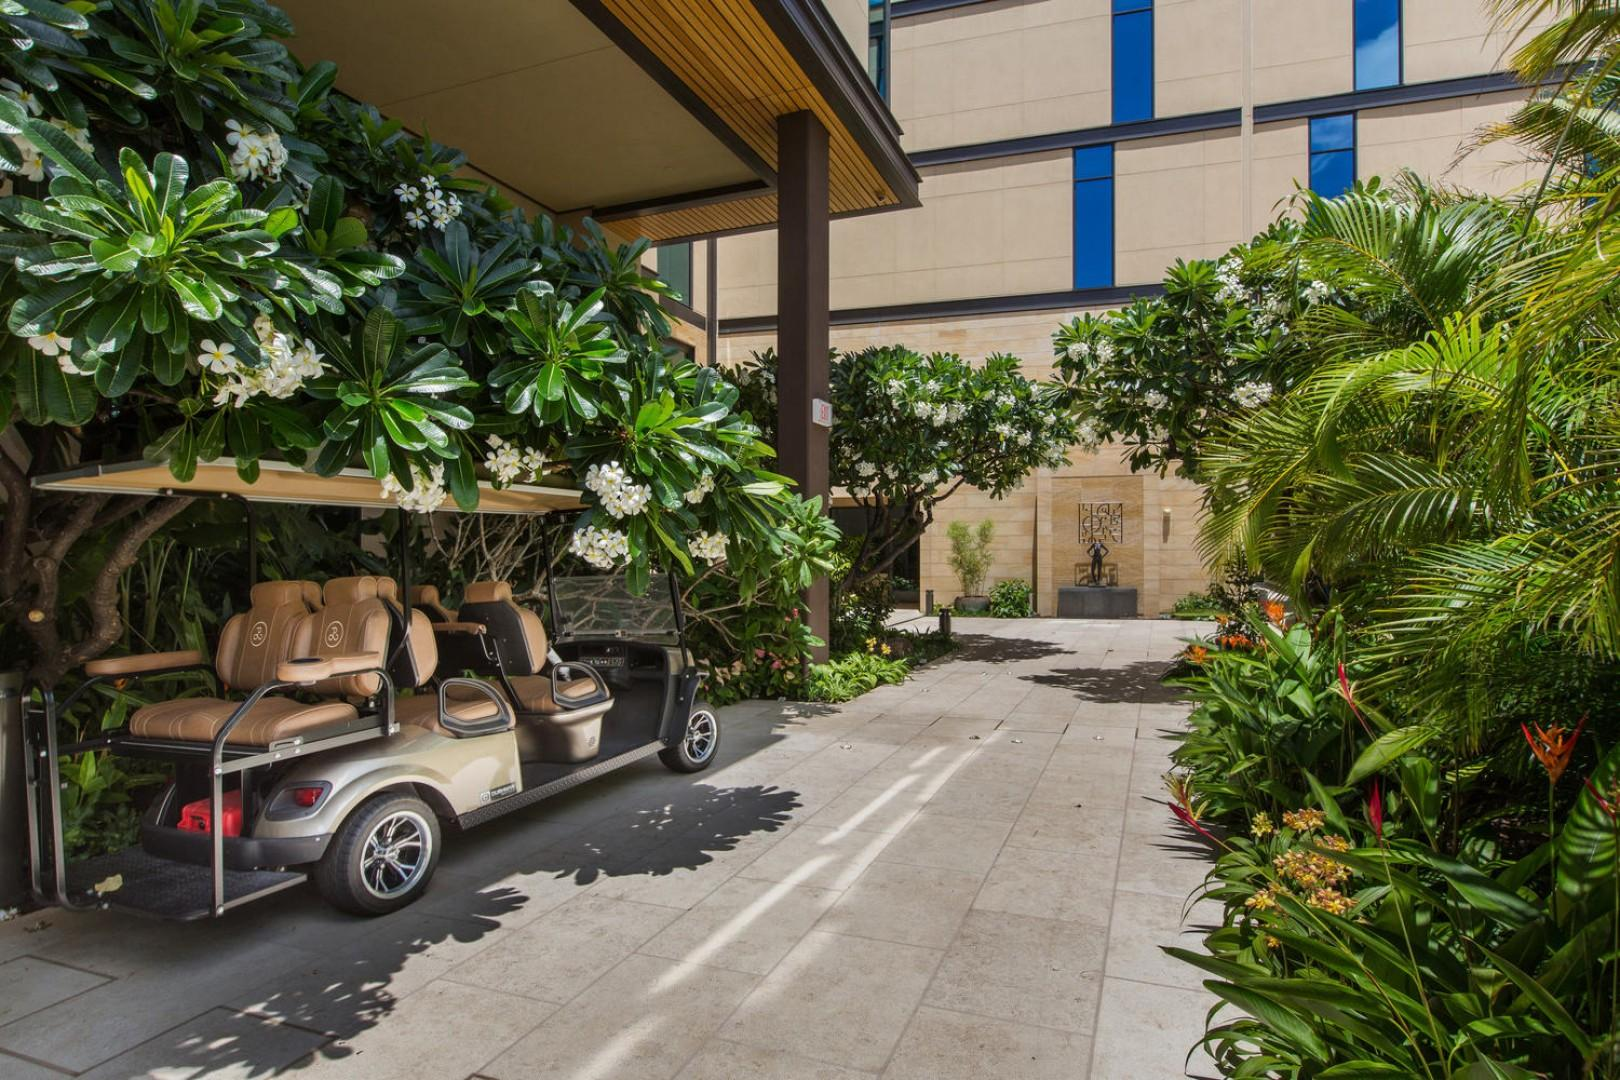 Golf Cart Amenity Use for Residents